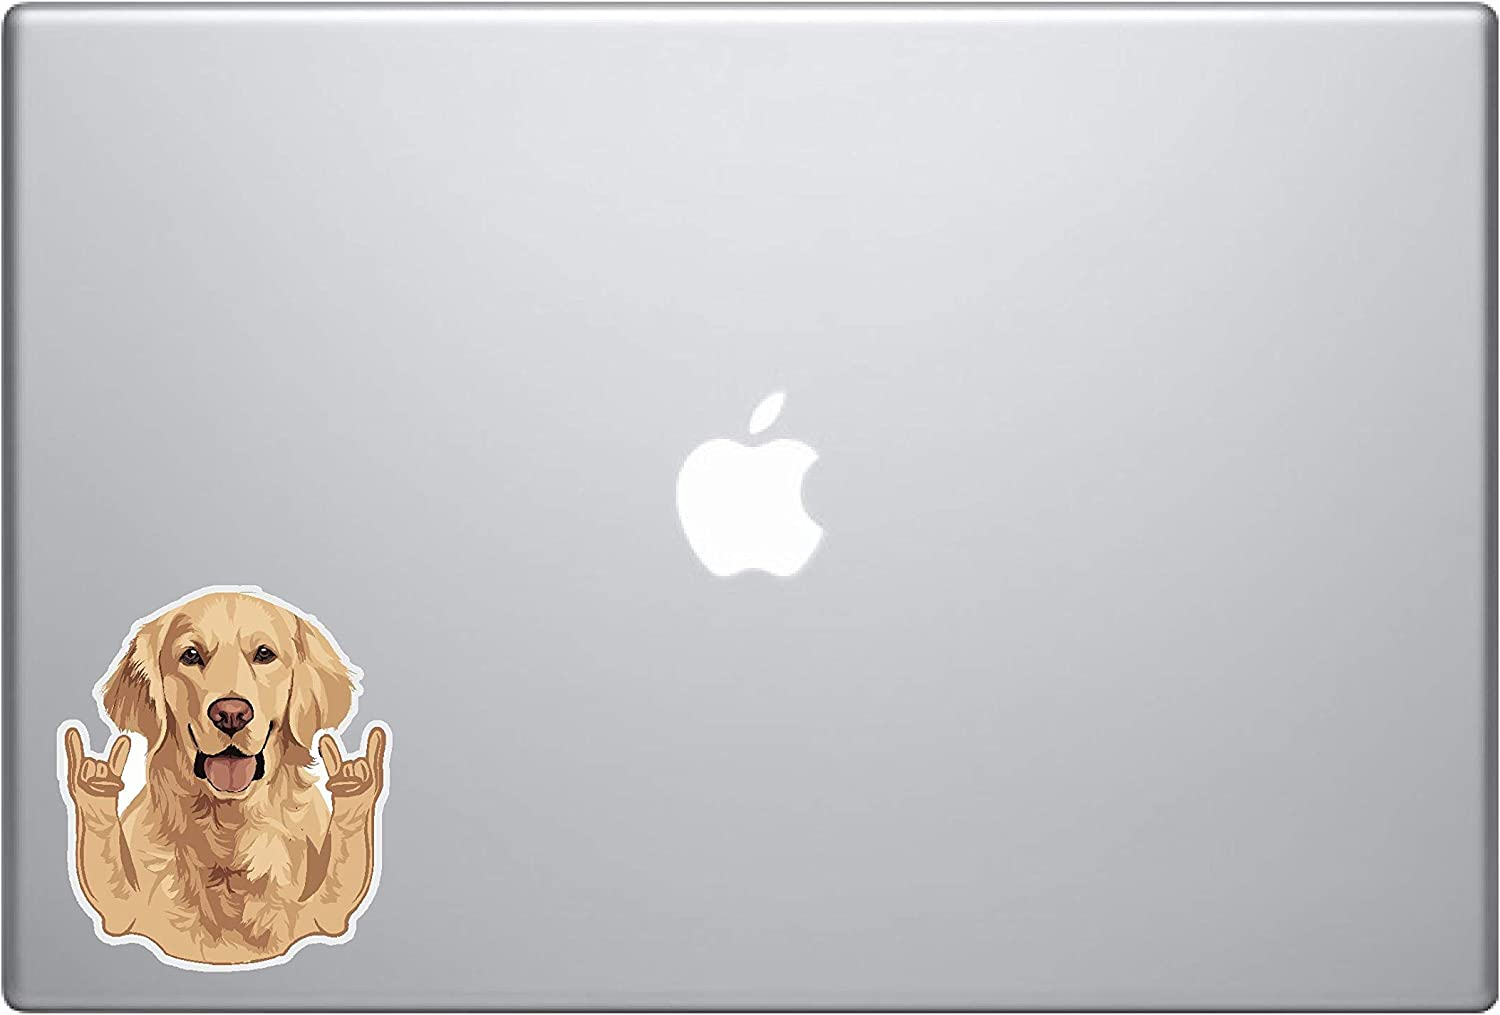 Laptop Notebook Sticker Decal Skins - Golden Retriever Funny Hang Loose arms Skins Stickers